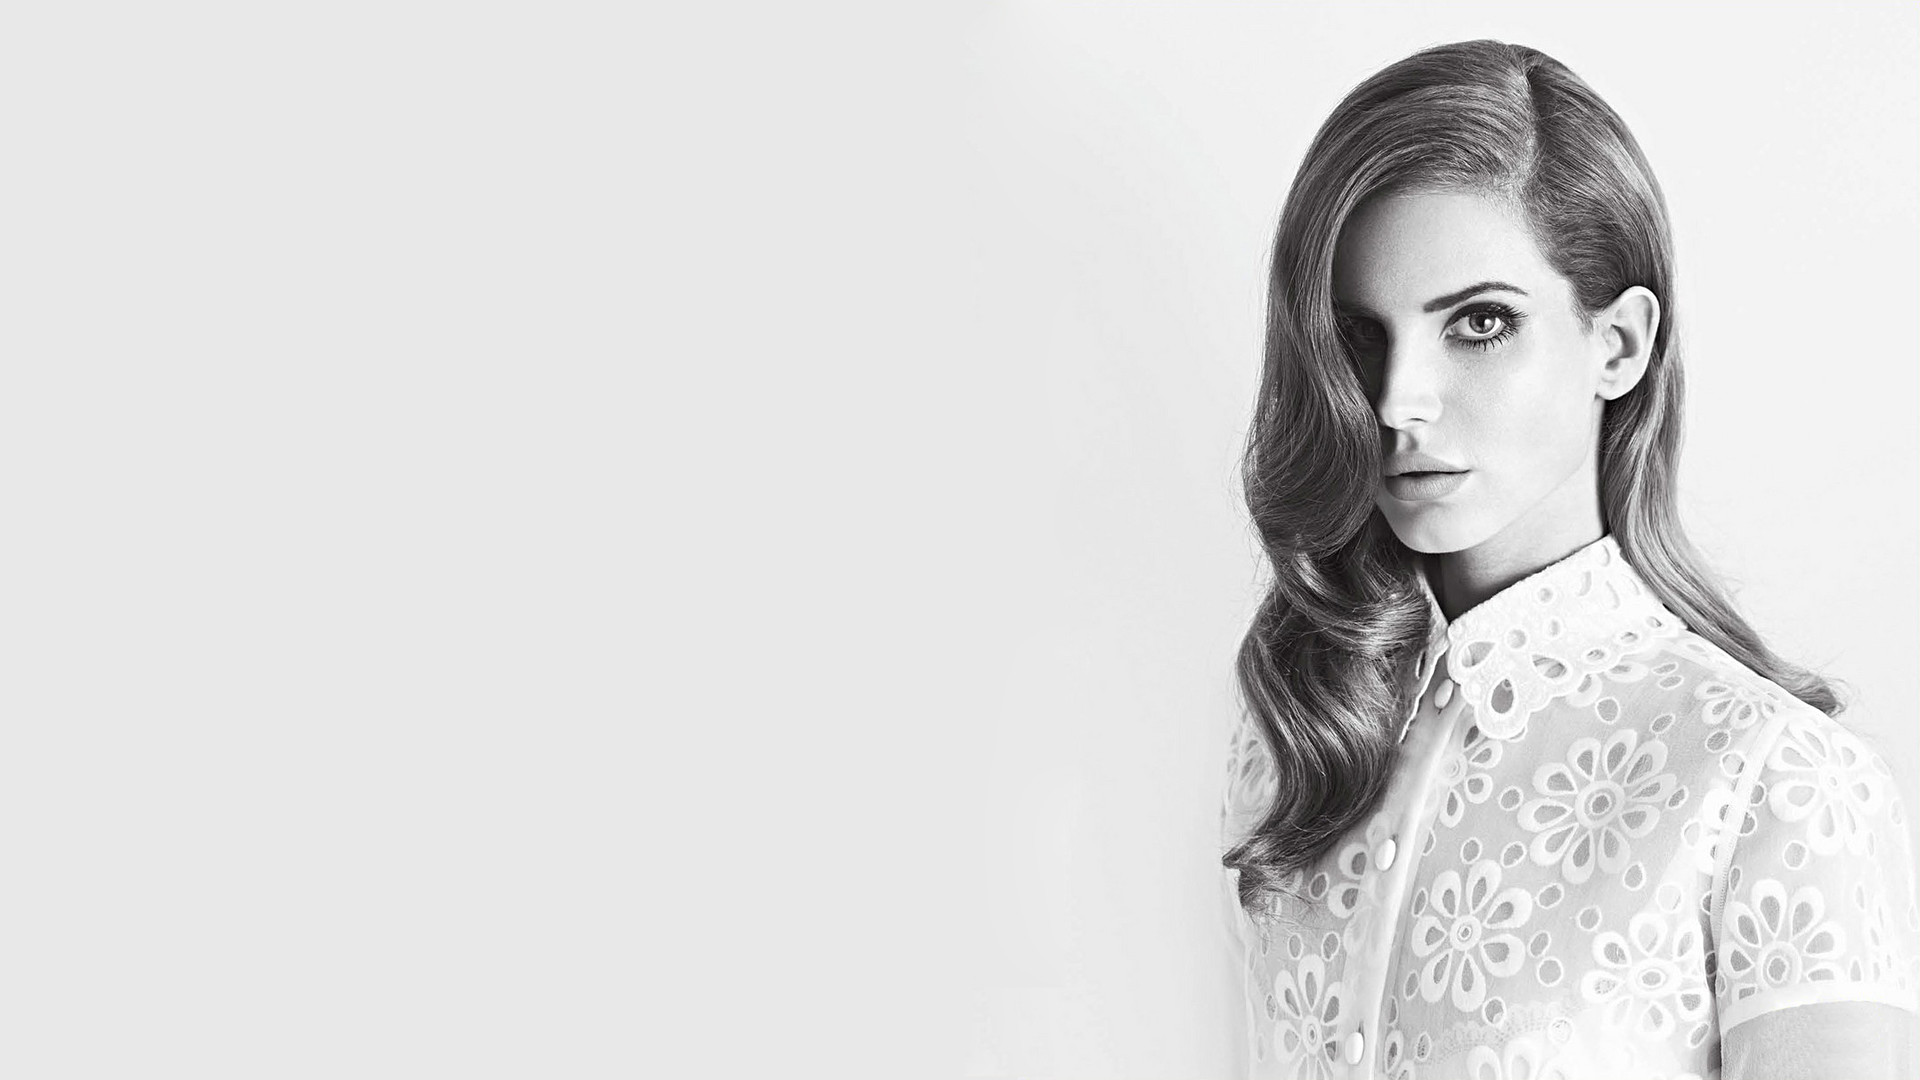 Most Inspiring Wallpaper Mac Lana Del Rey - 844128-jesse-mccartney-wallpapers-1920x1080-cell-phone  Perfect Image Reference_143393.jpg